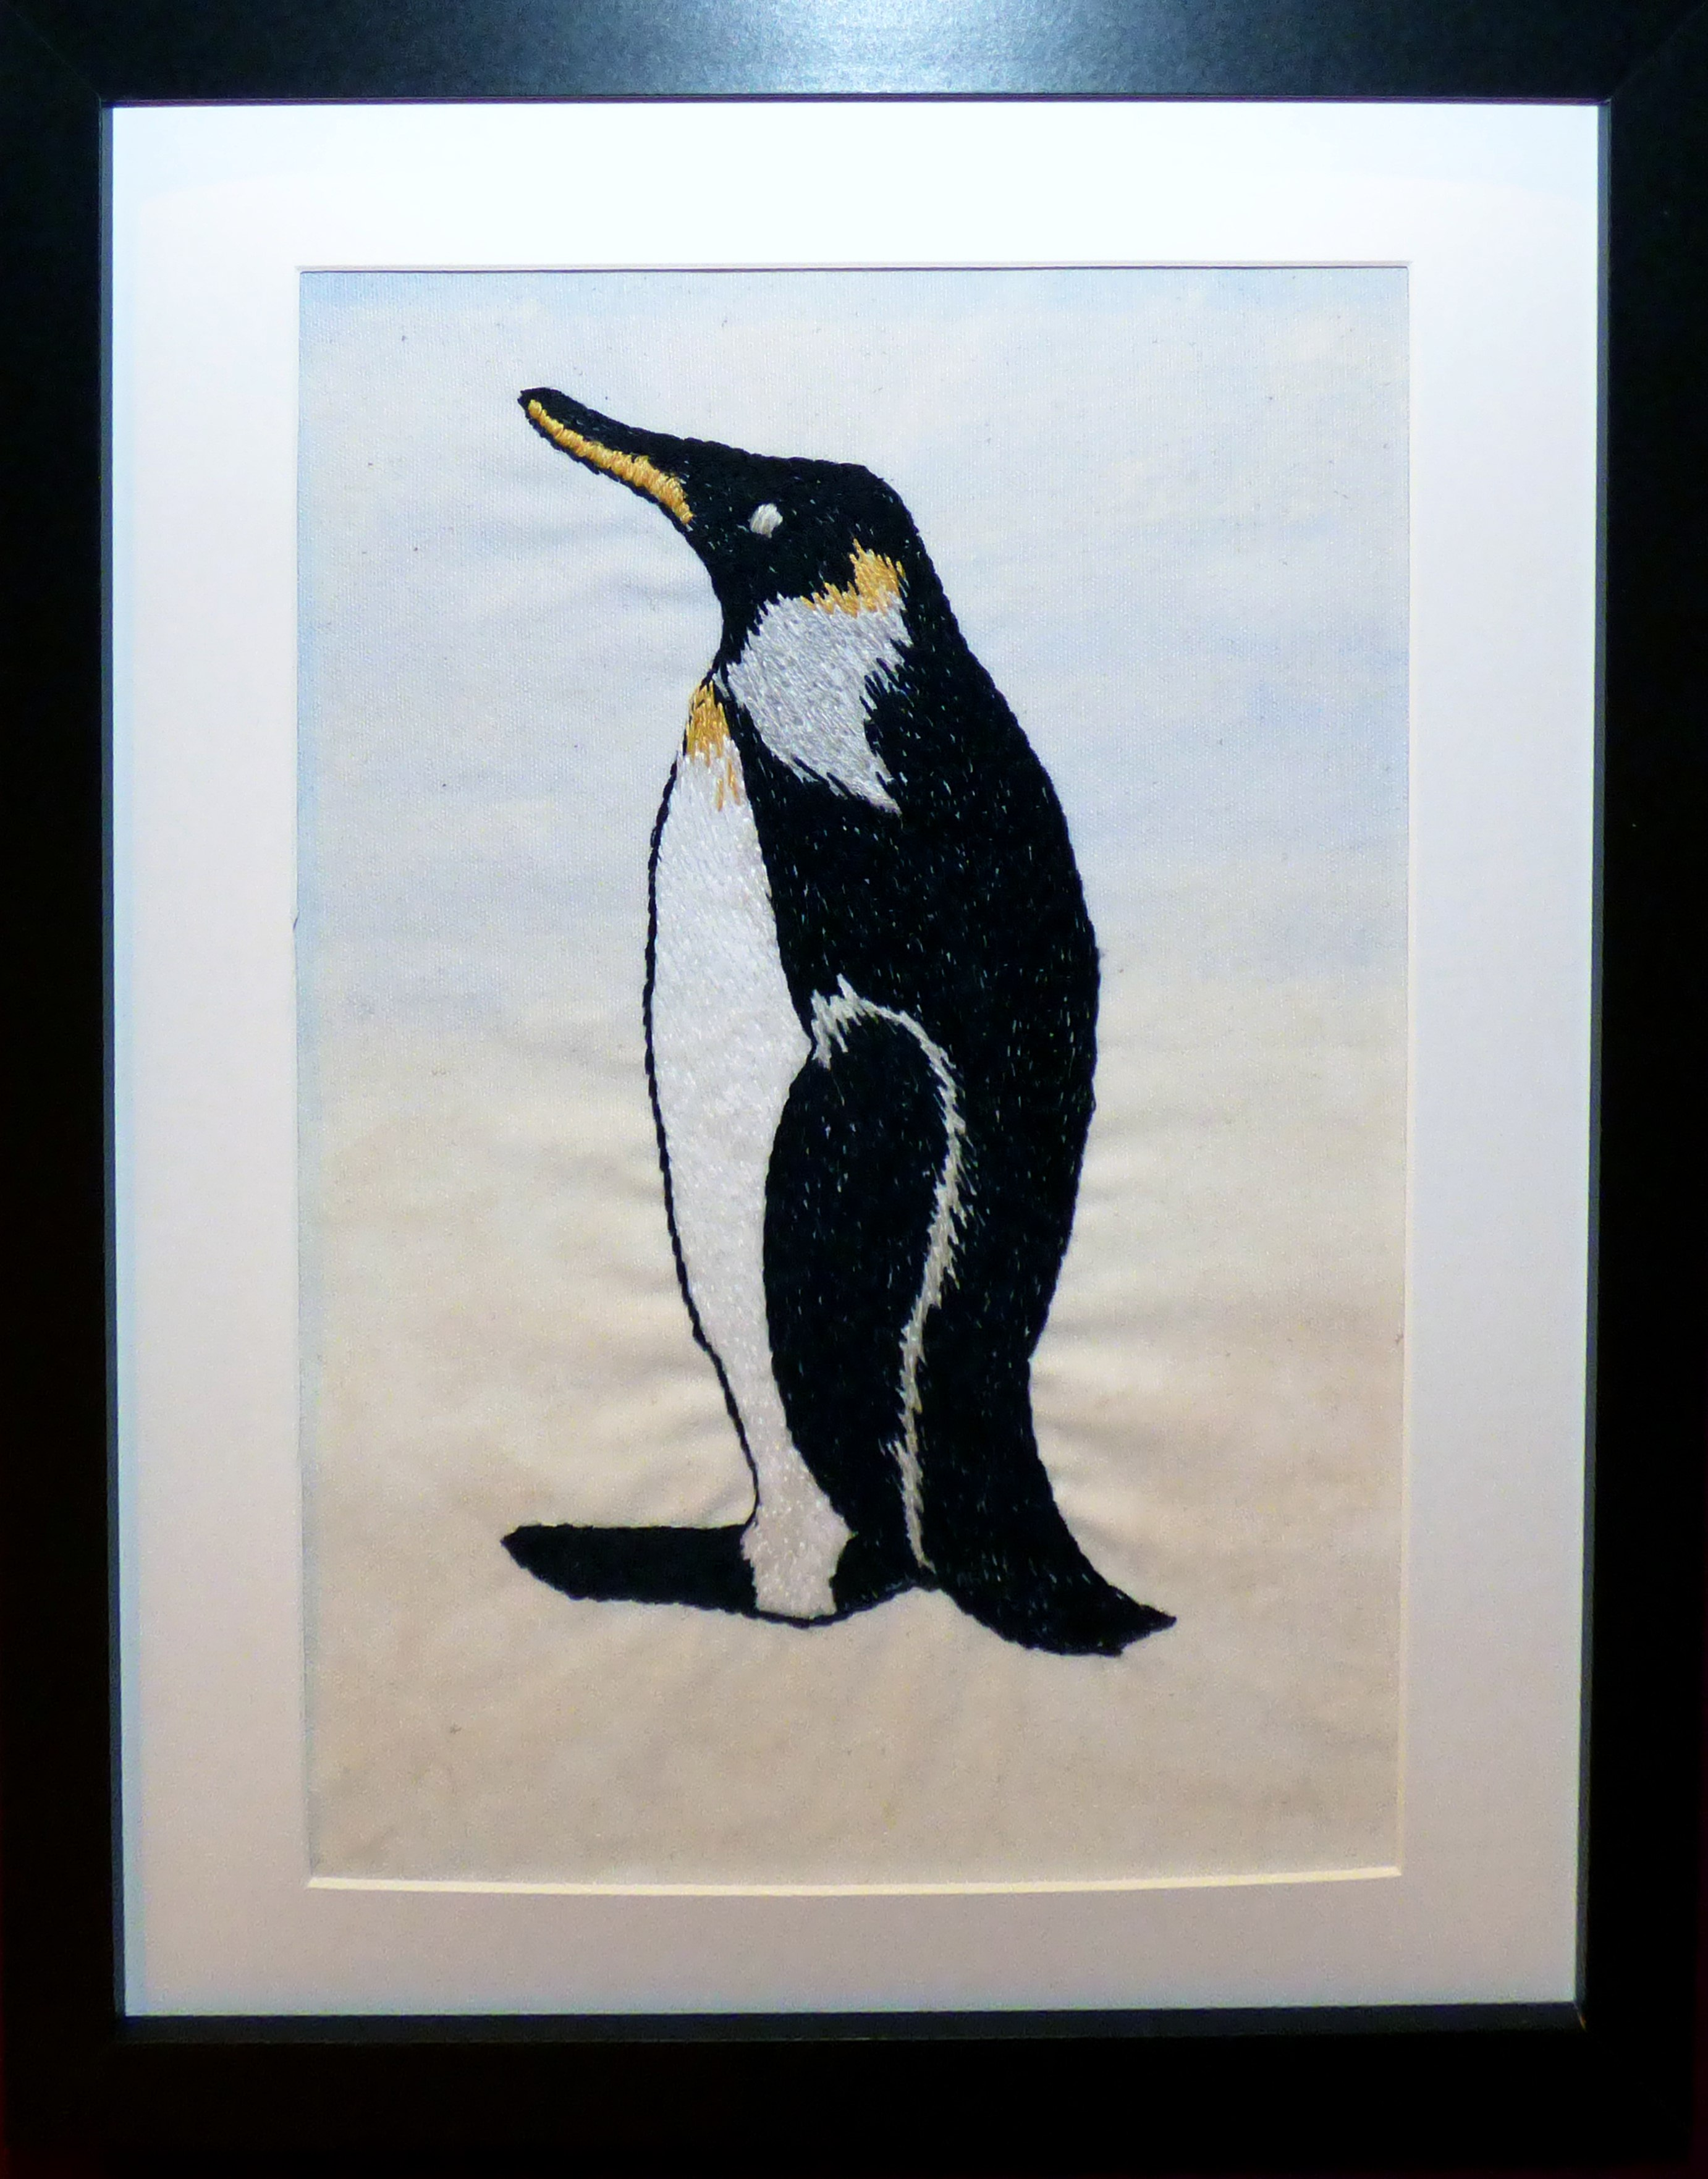 PENGUIN by Linda Sowler, hand embroidery,  Endeavour exhibition, Liverpool Cathedral, Sept 2018